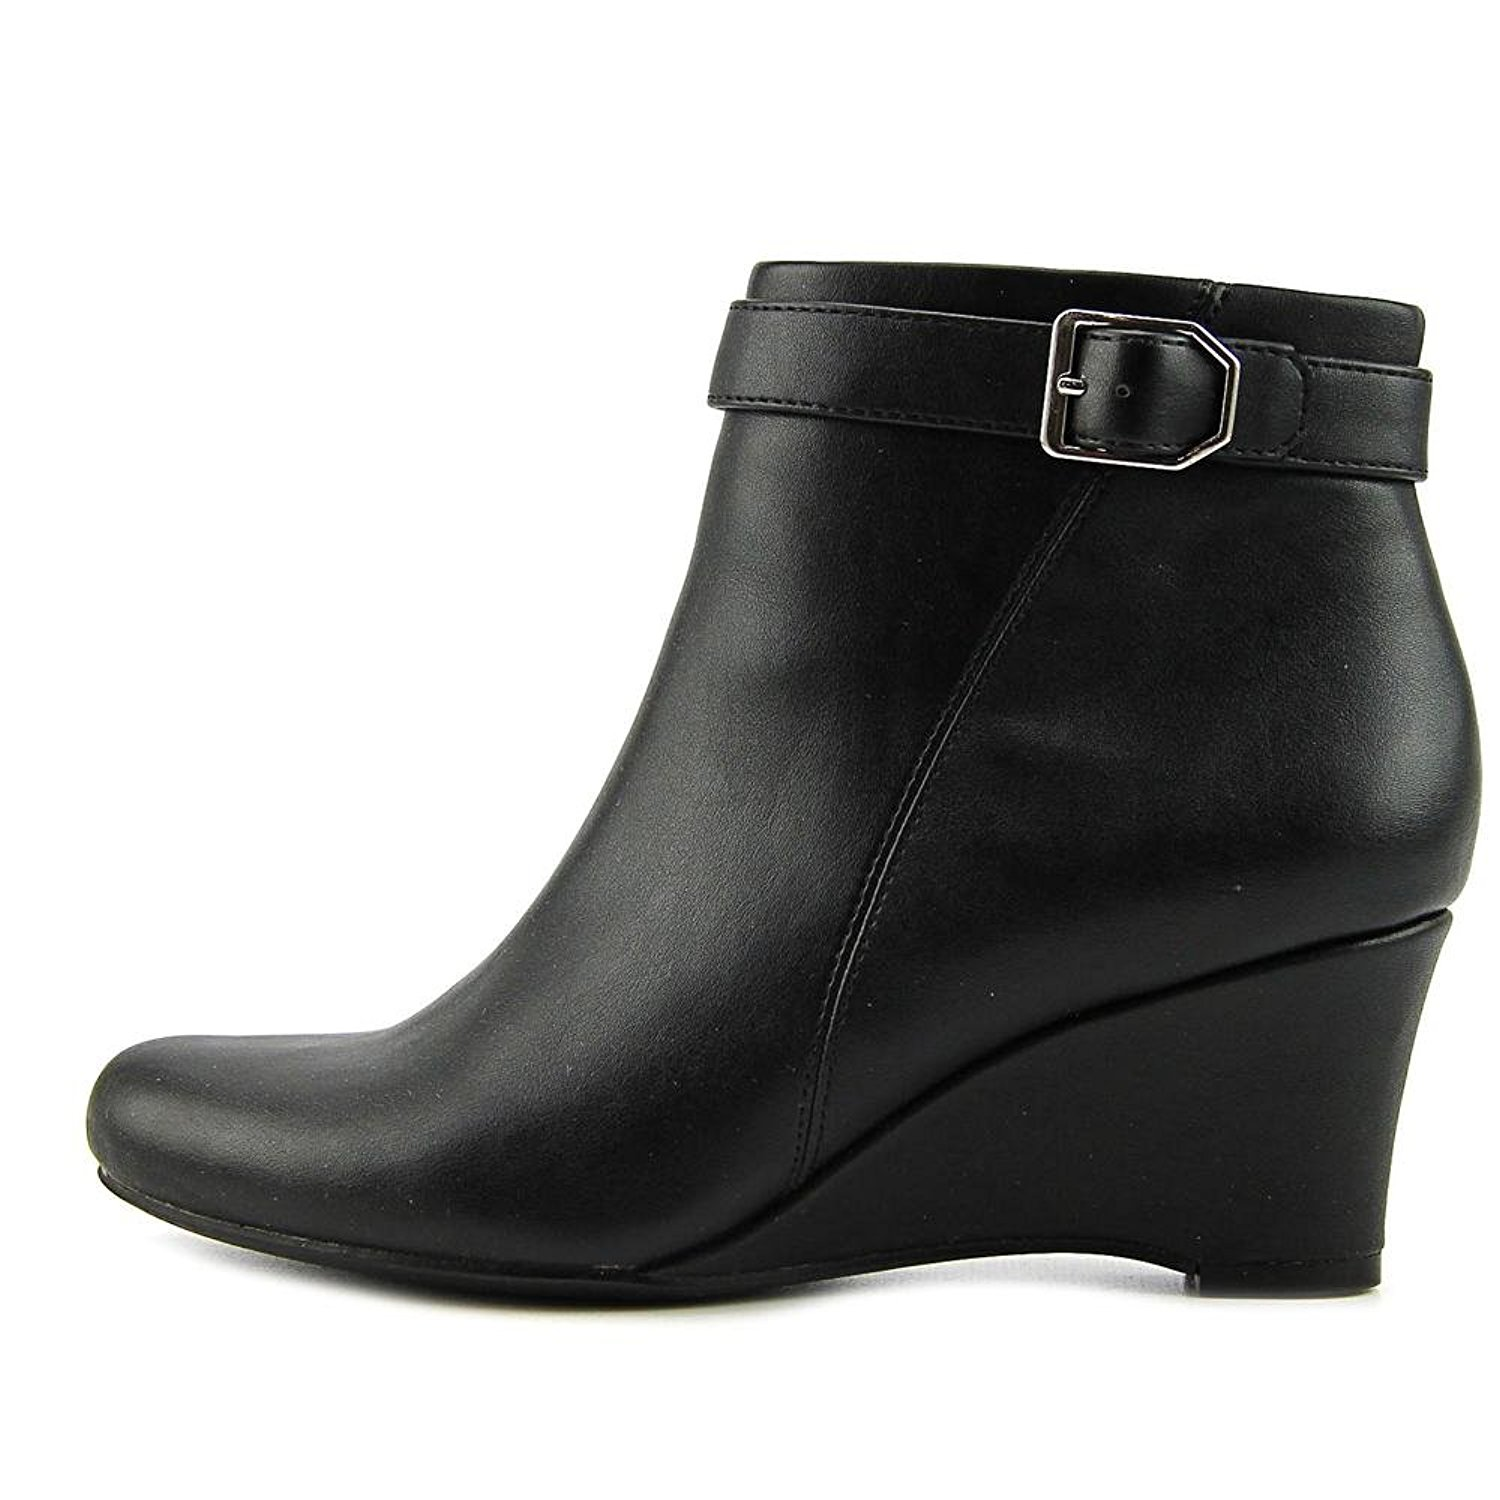 Naturalizer Womens Hurley Round Toe Ankle Platform Boots by Naturalizer